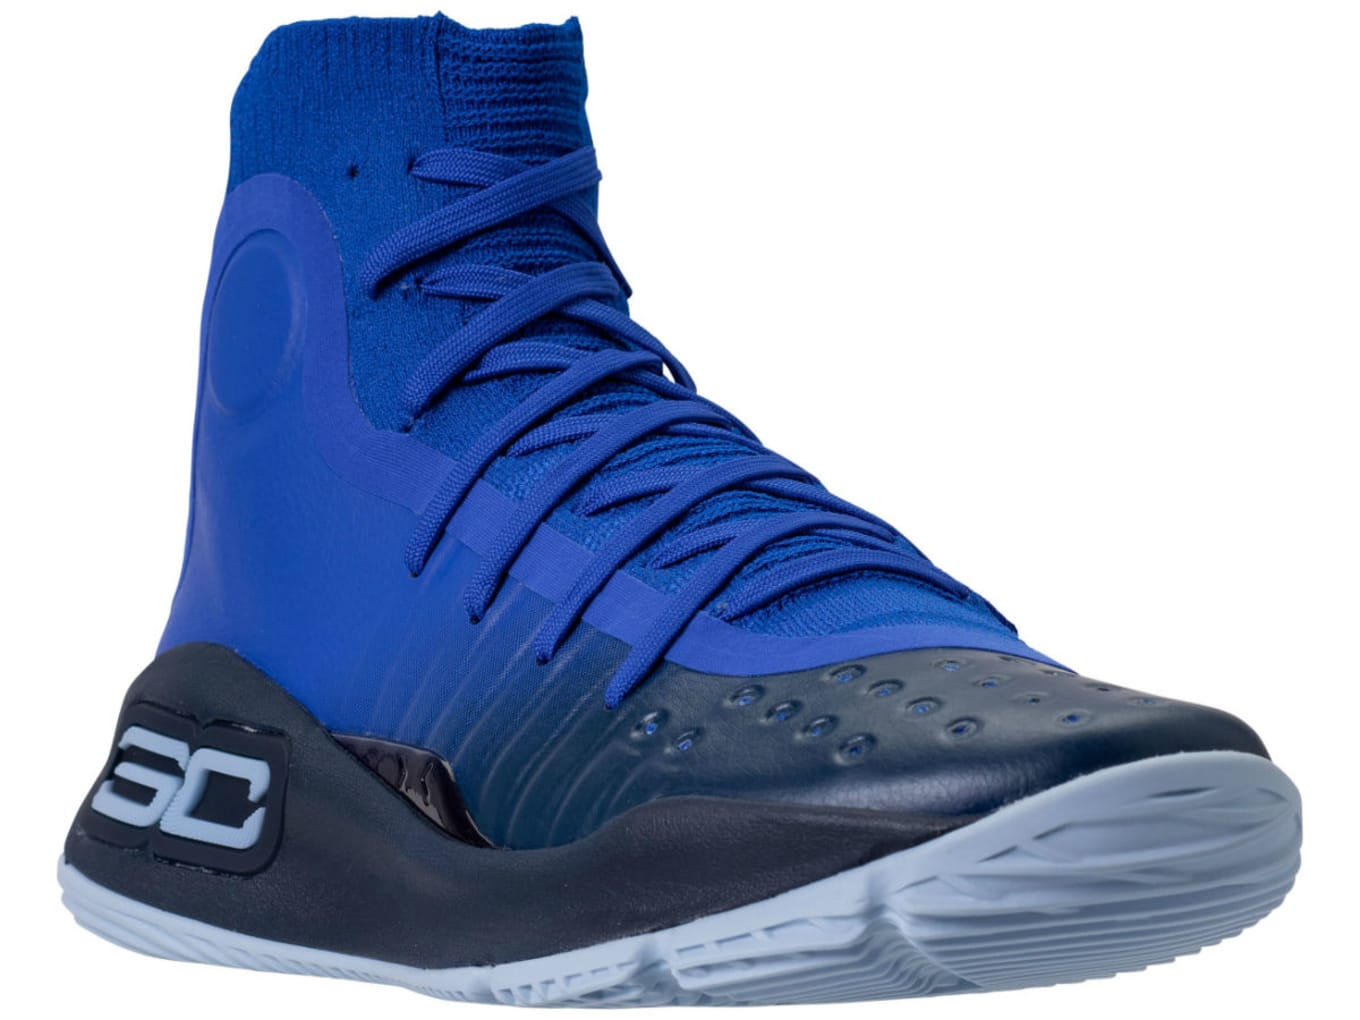 new concept deff0 02c23 Under Armour Curry 4 Away Release Date 1298306-401 Profile ...